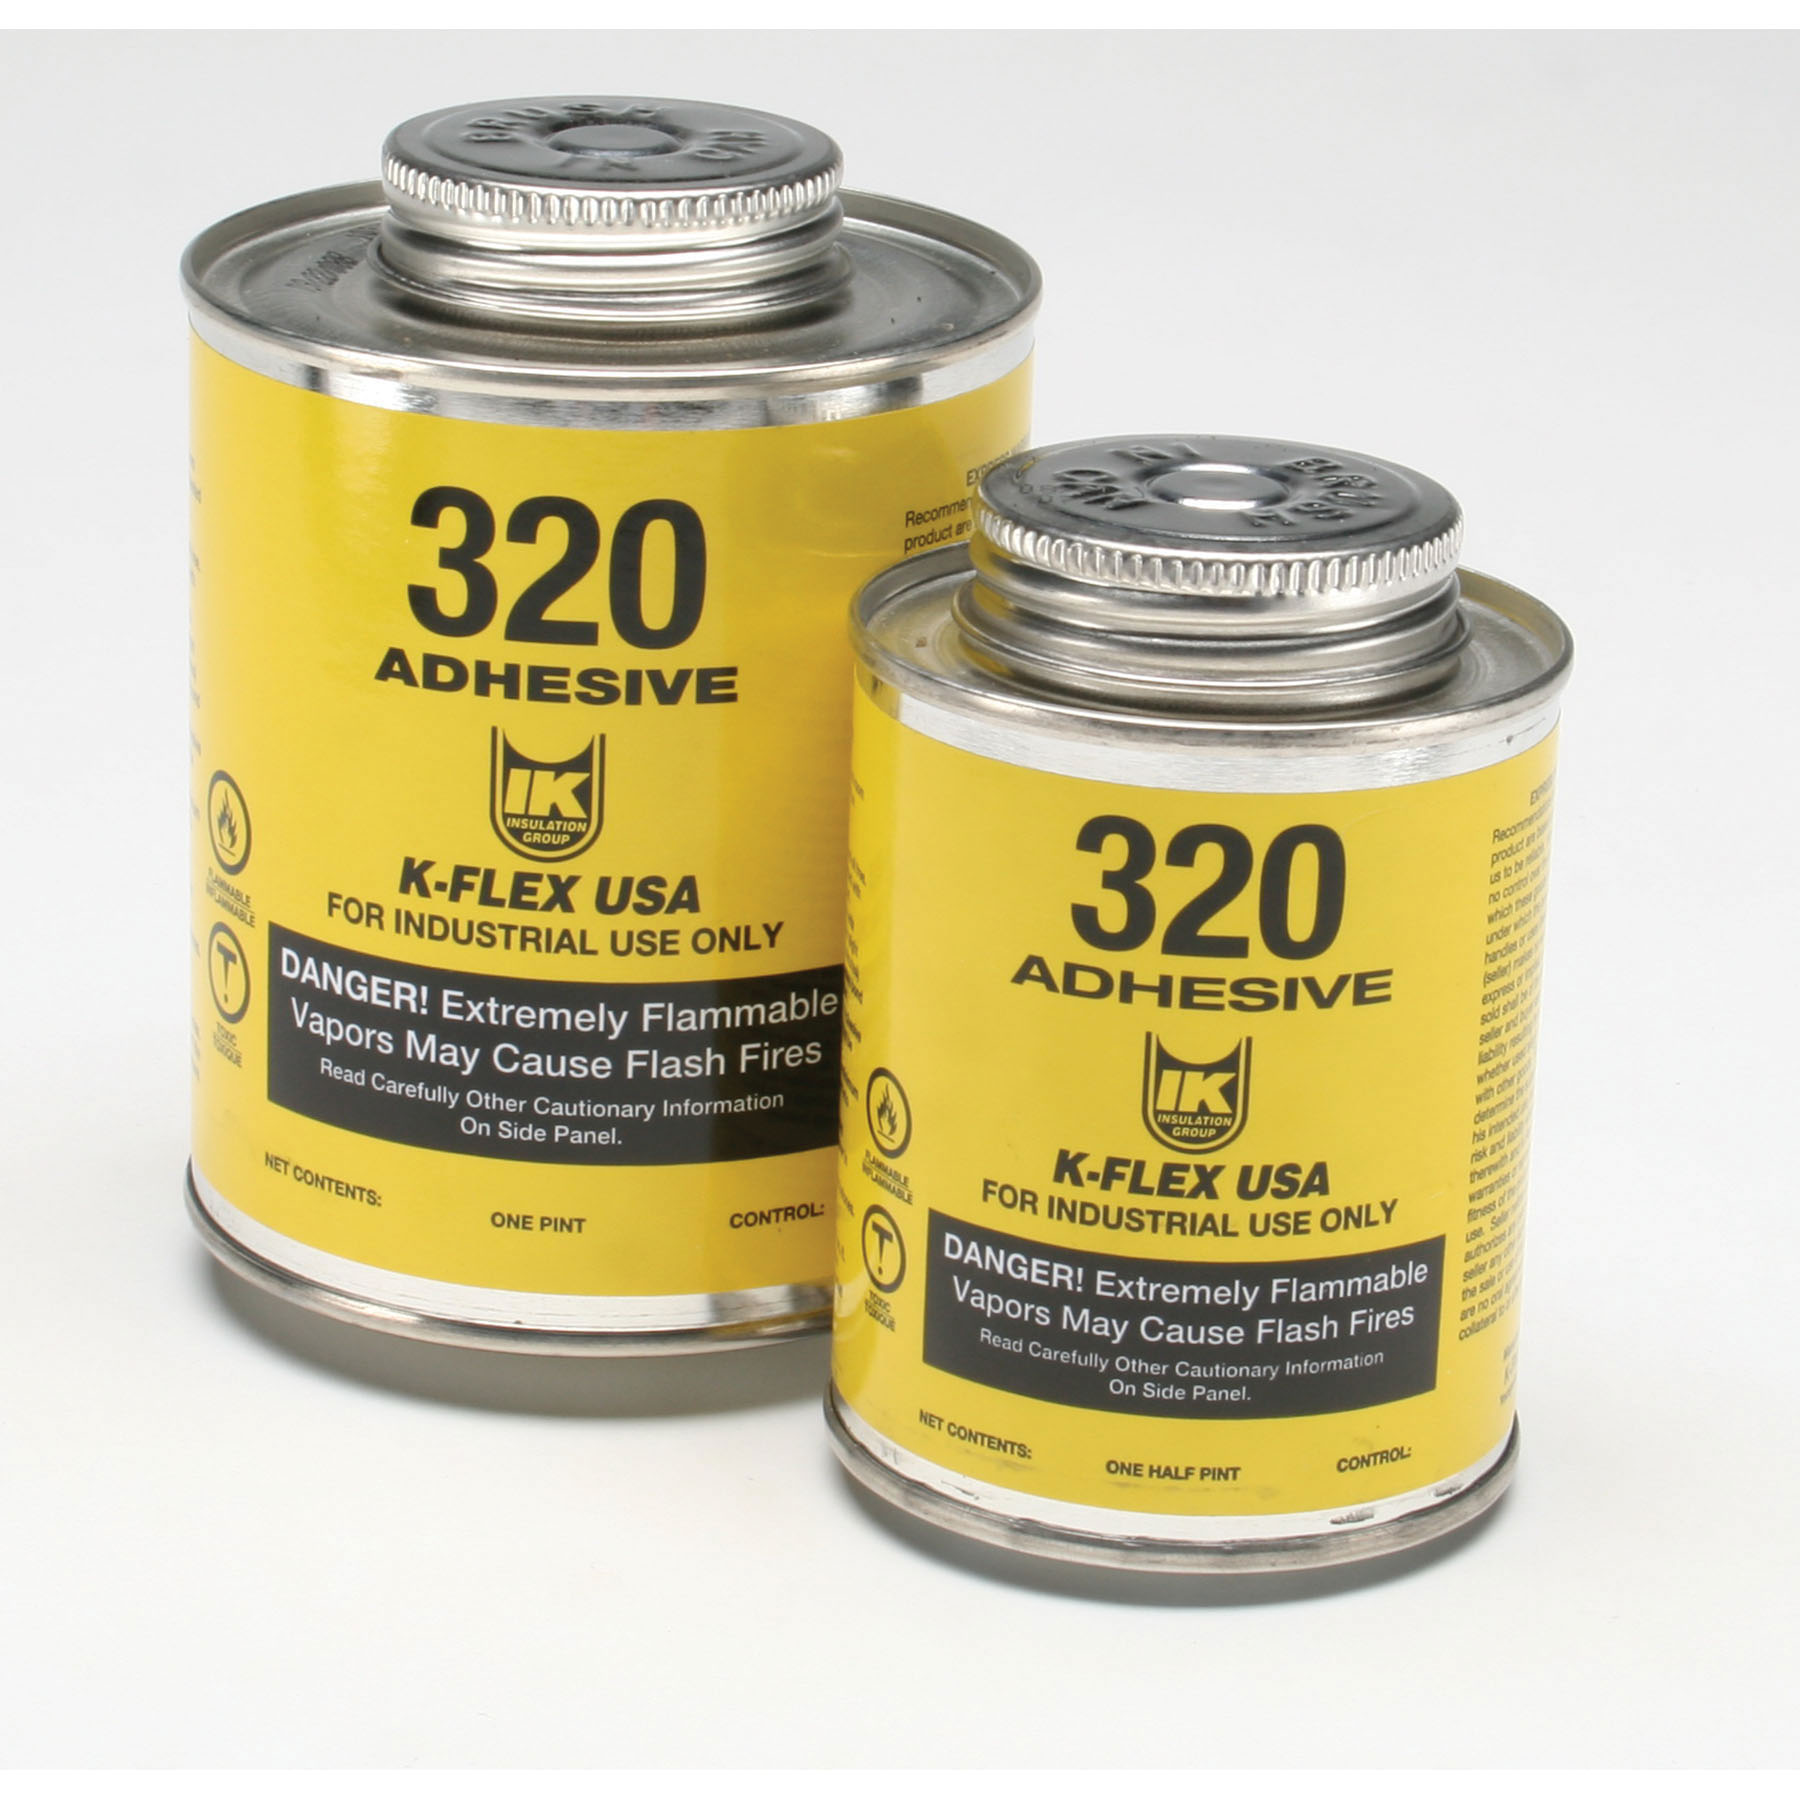 Contact Adhesive, 1 pt Can, Amber